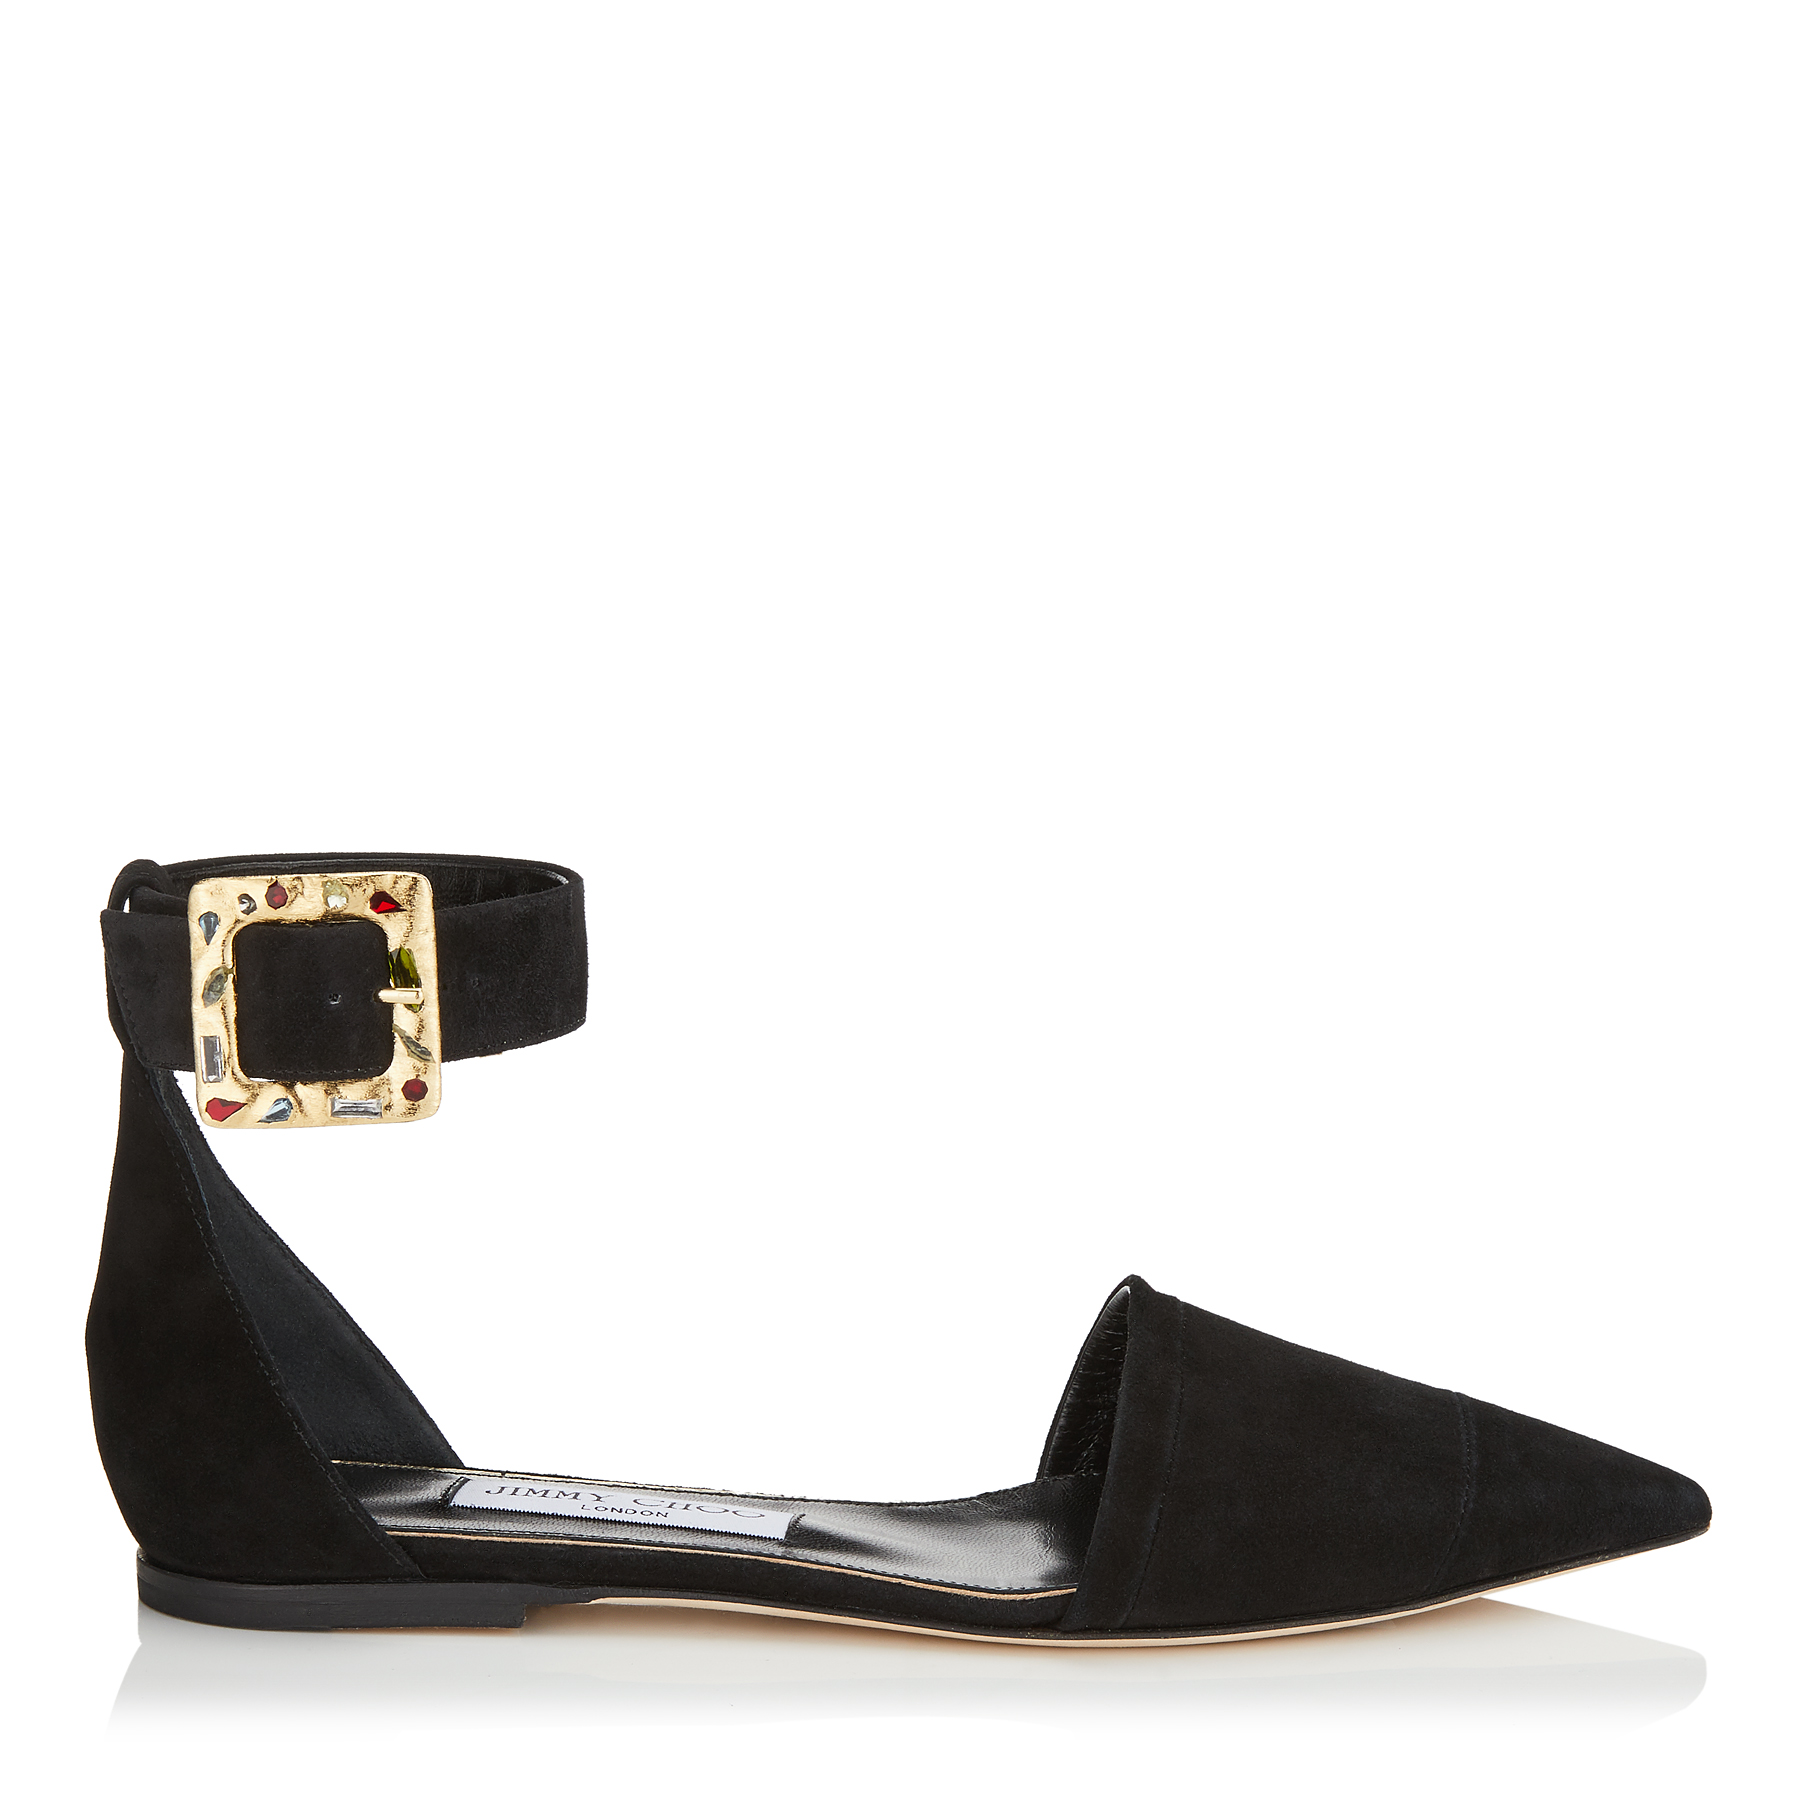 HALINA FLAT Black Suede Pointy Toe Flats with Jewelled Buckle by Jimmy Choo